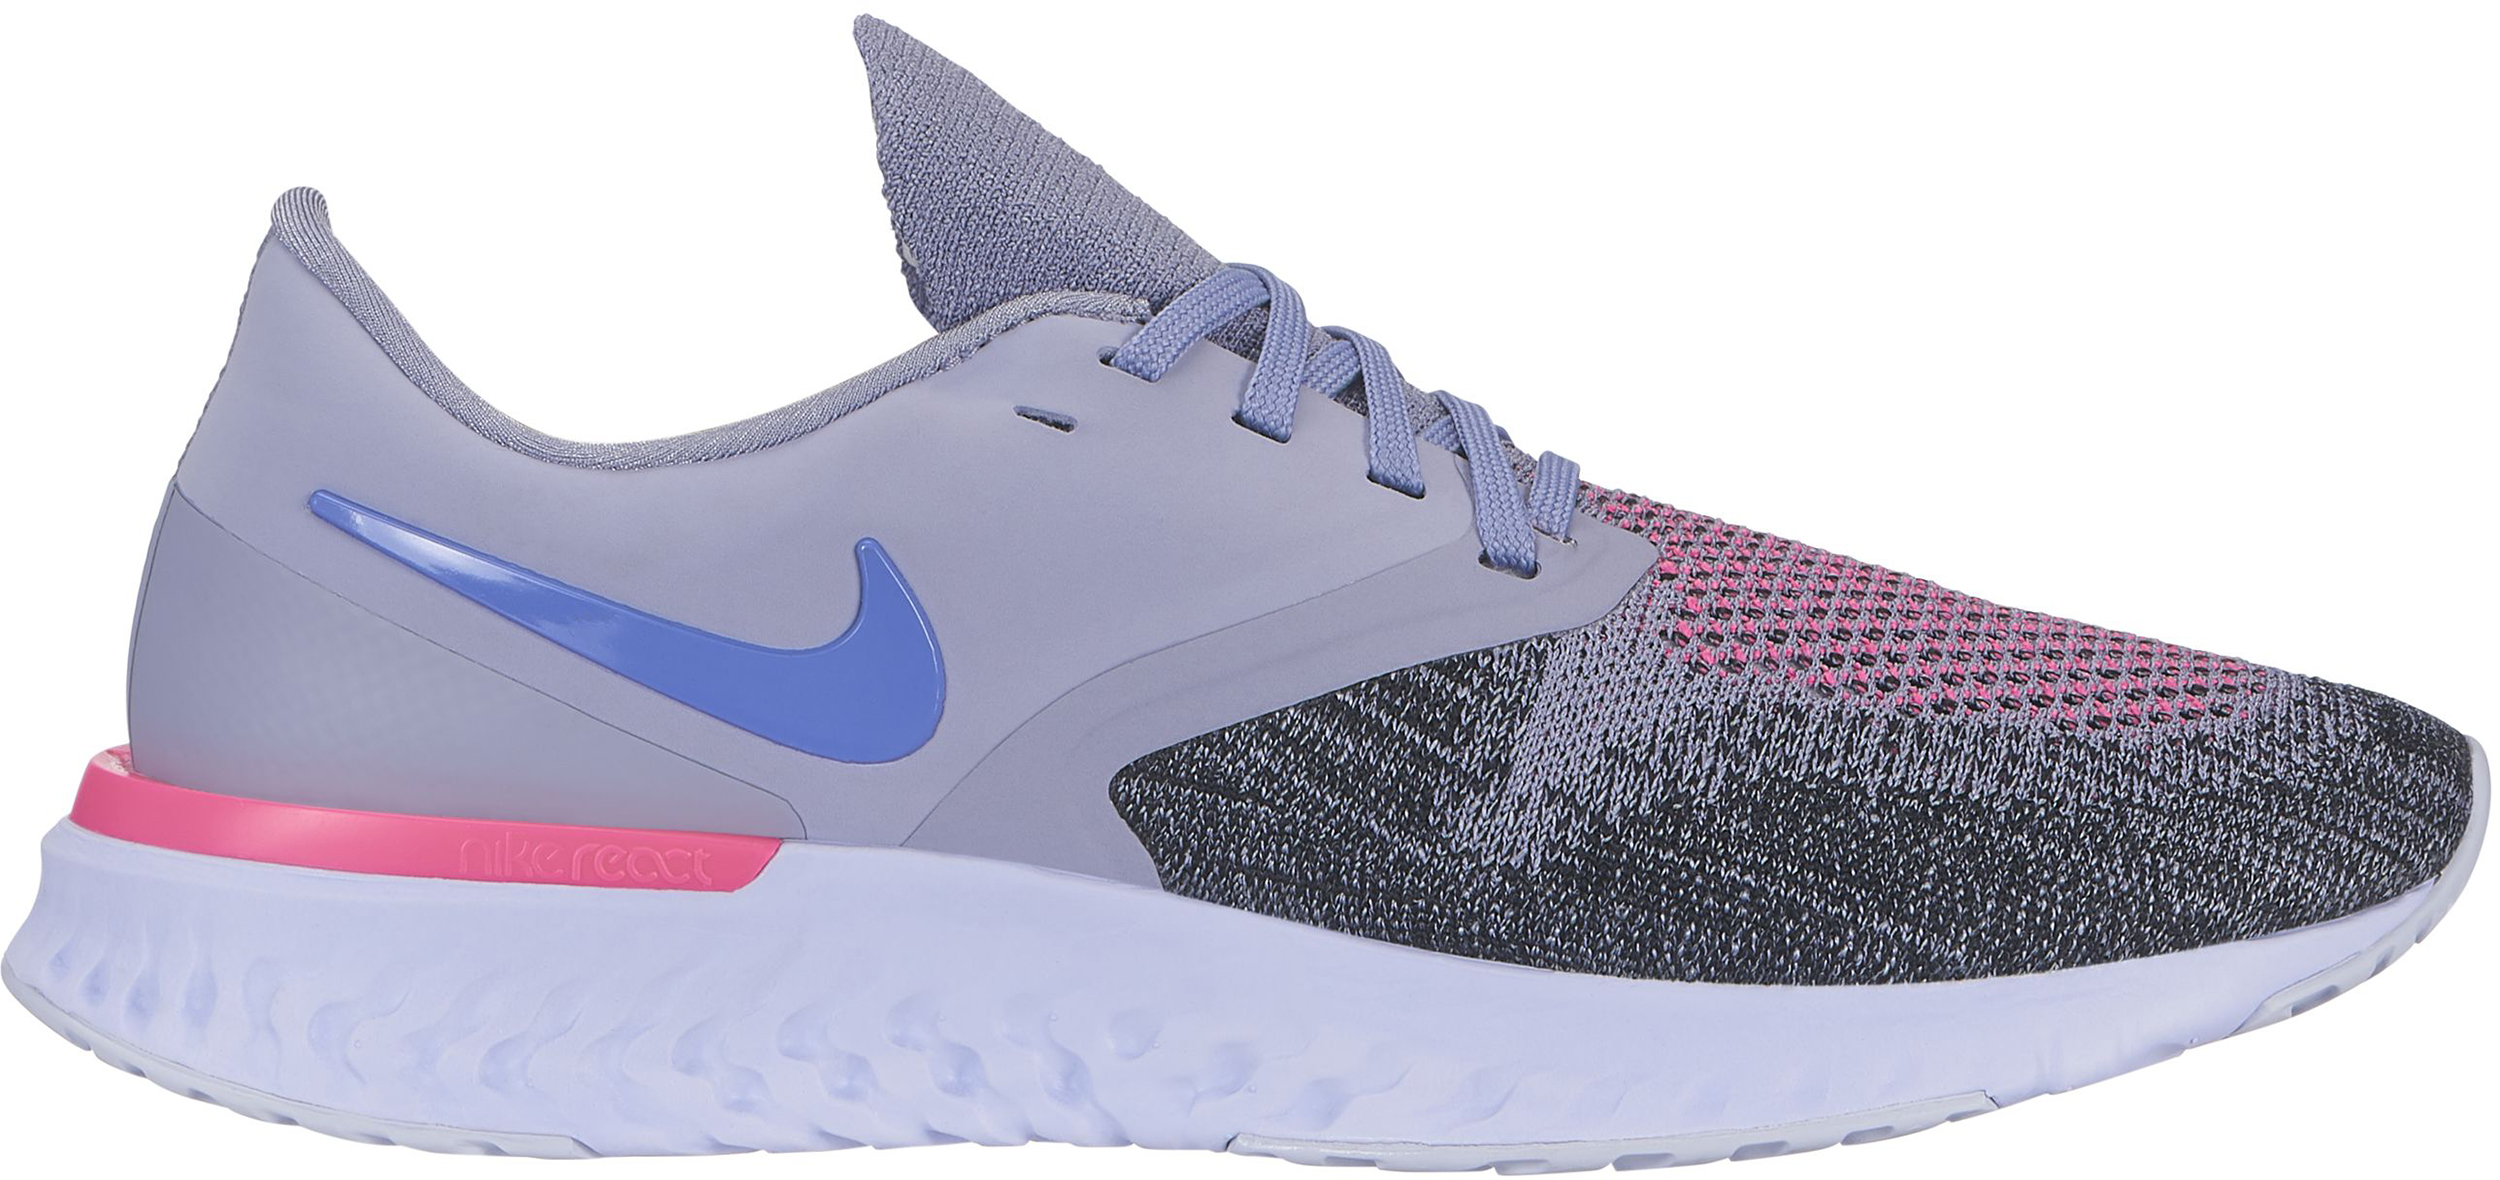 reputable site be821 786b6 Nike Odyssey React Flyknit 2 Road Running Shoes - Women s